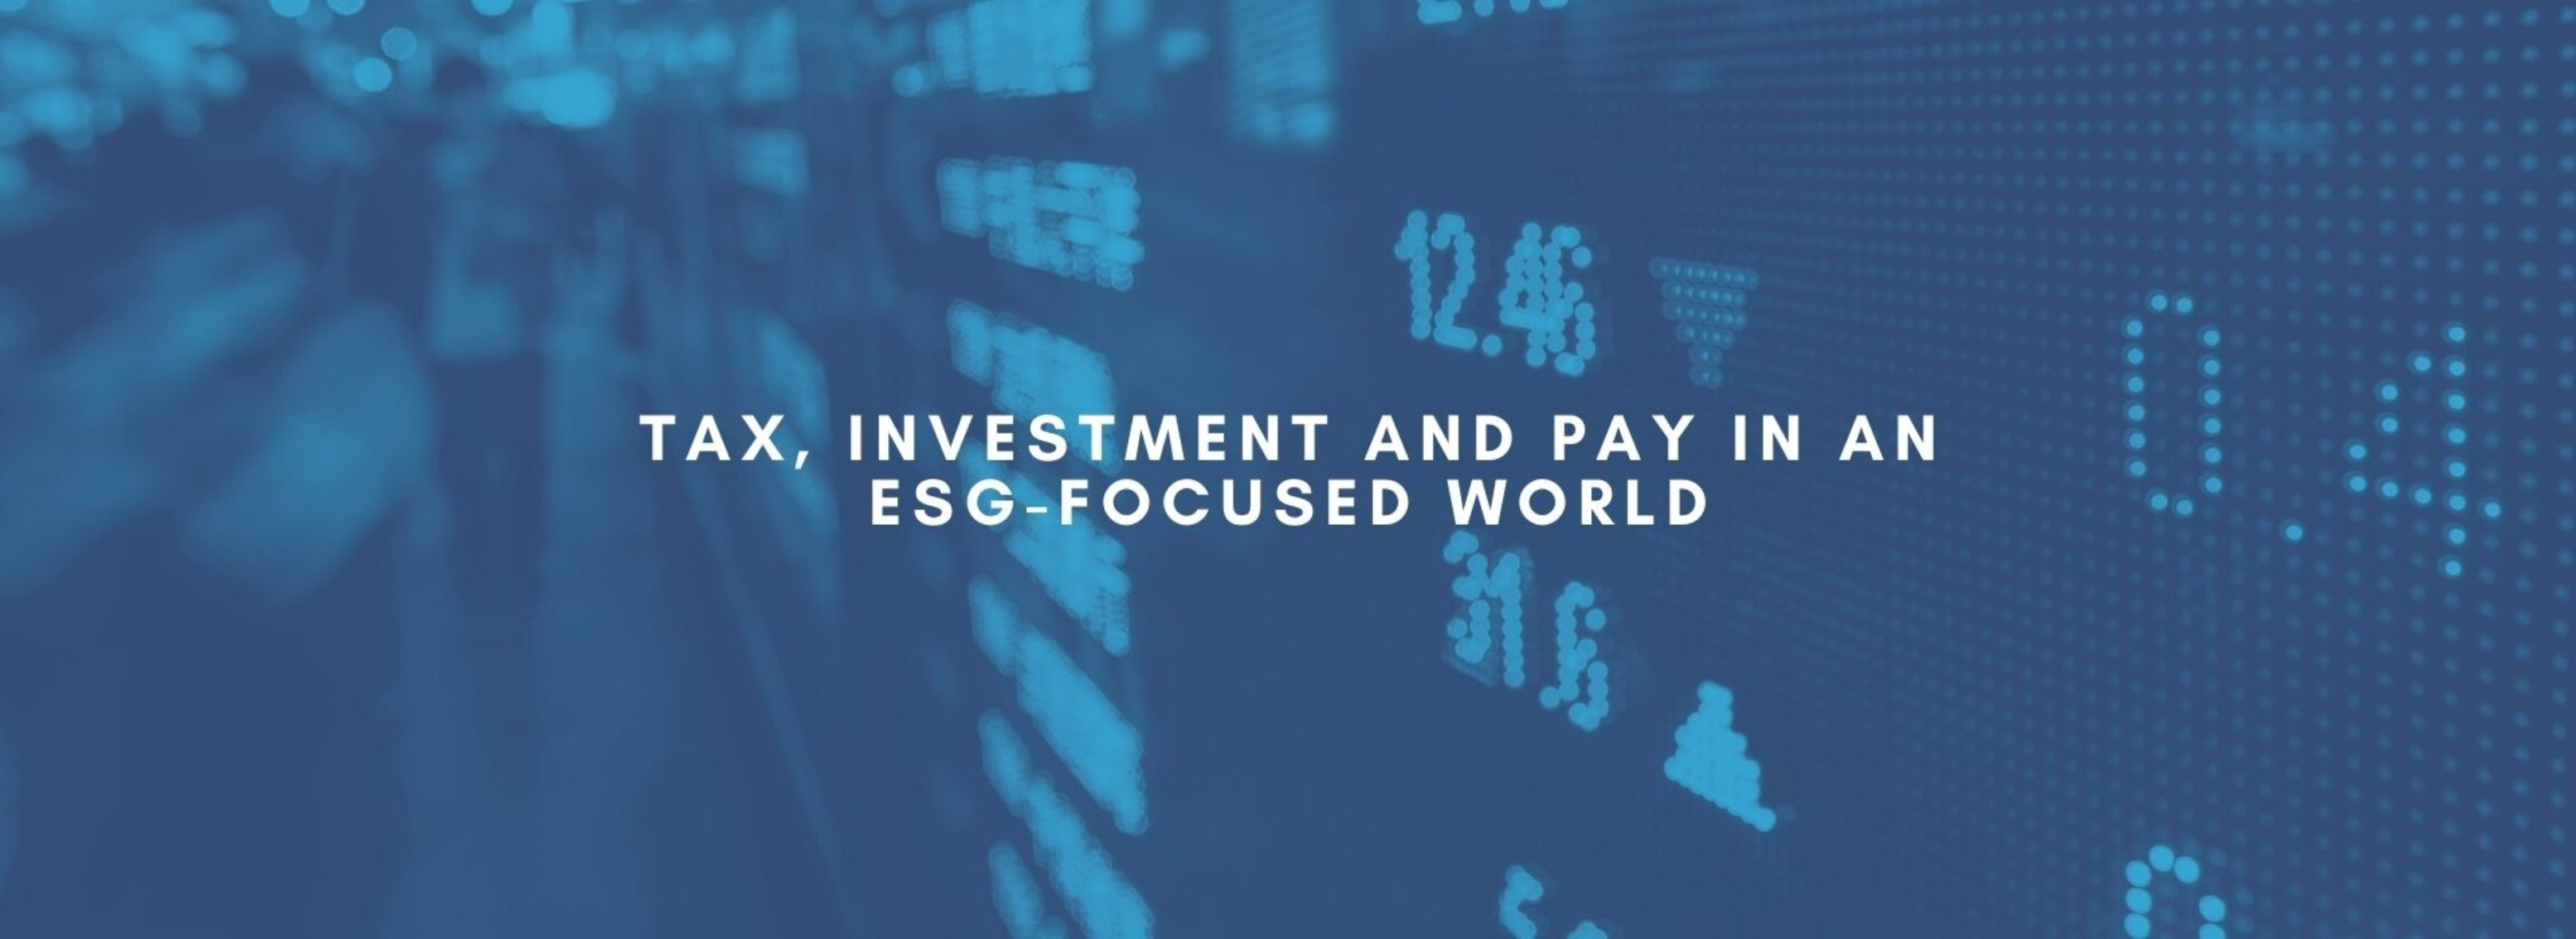 BM | Tax, Investment and Pay in an ESG focused world | June 16th, 2021